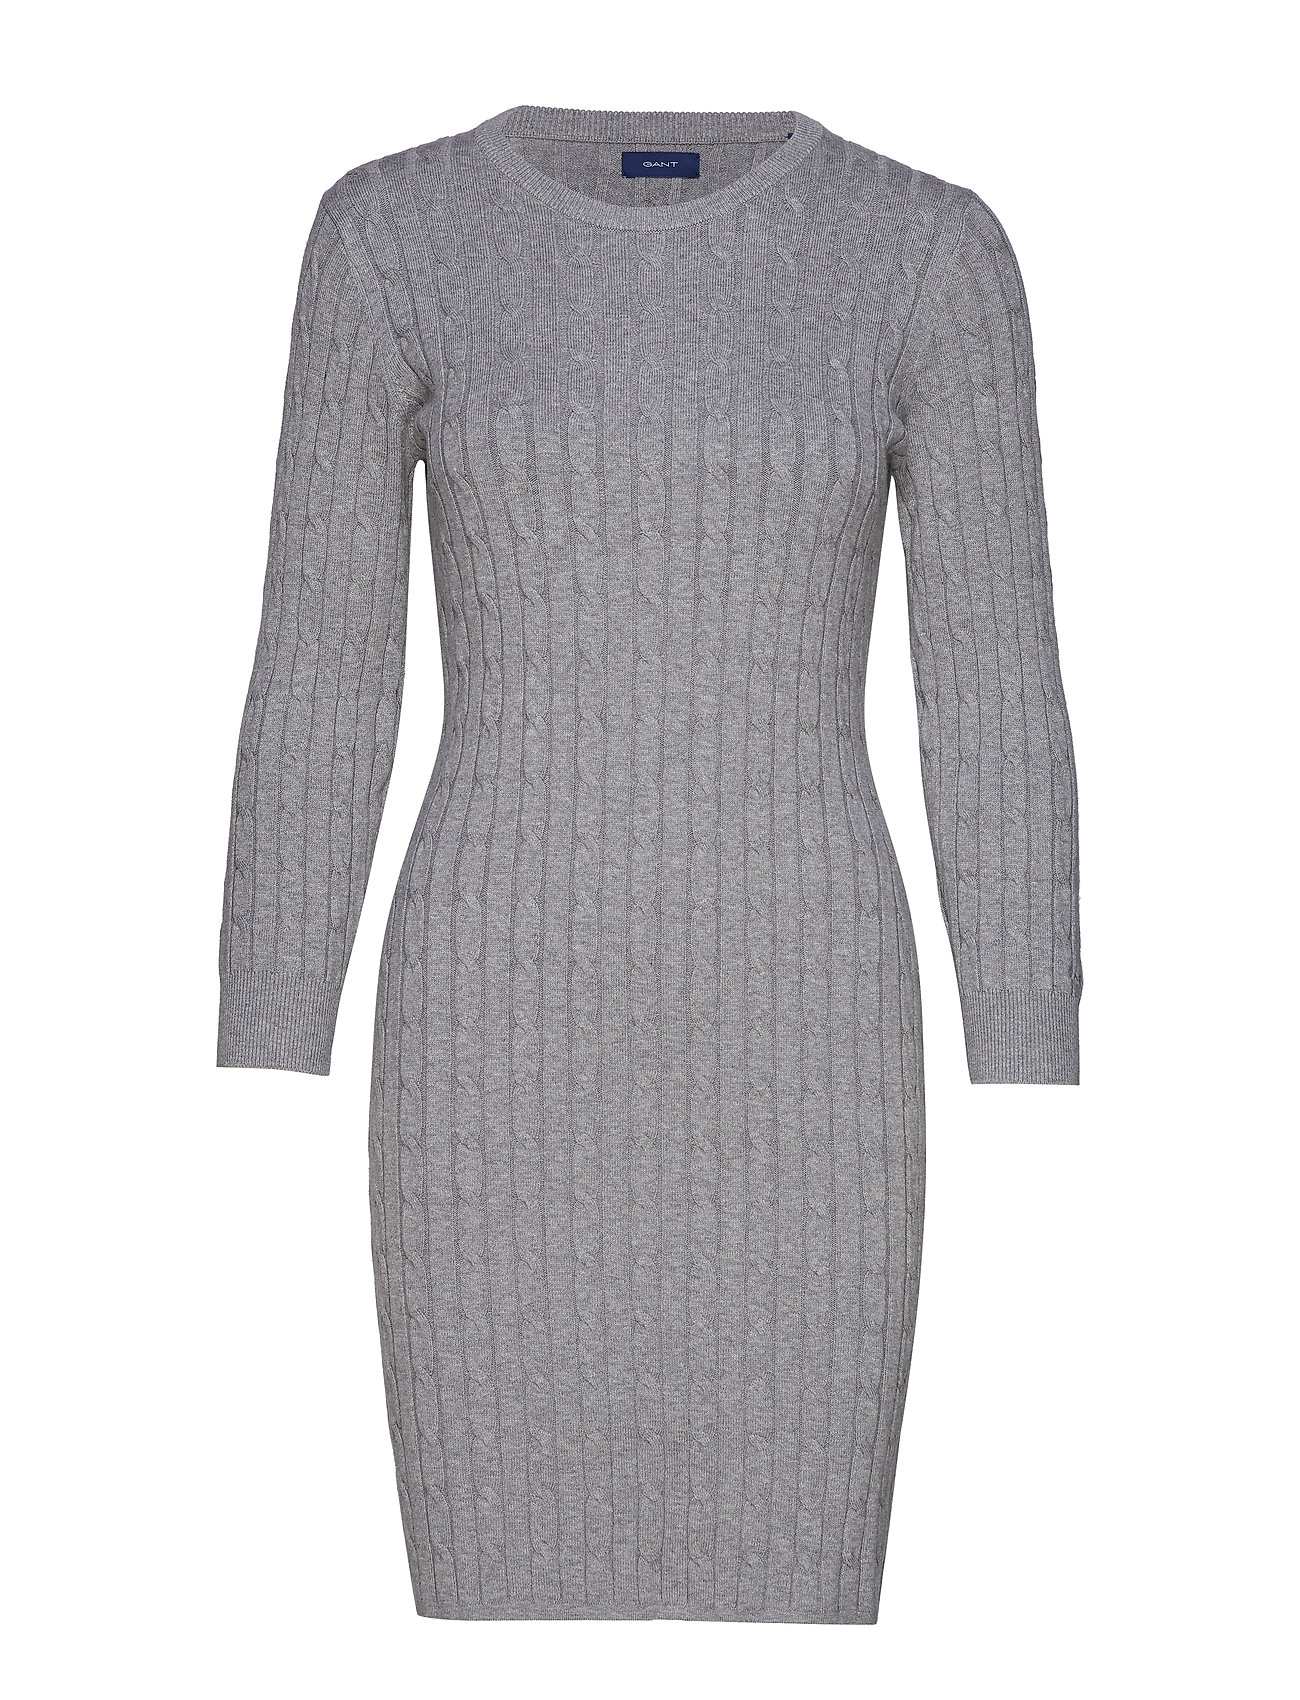 GANT STRETCH COTTON CABLE DRESS - GREY MELANGE